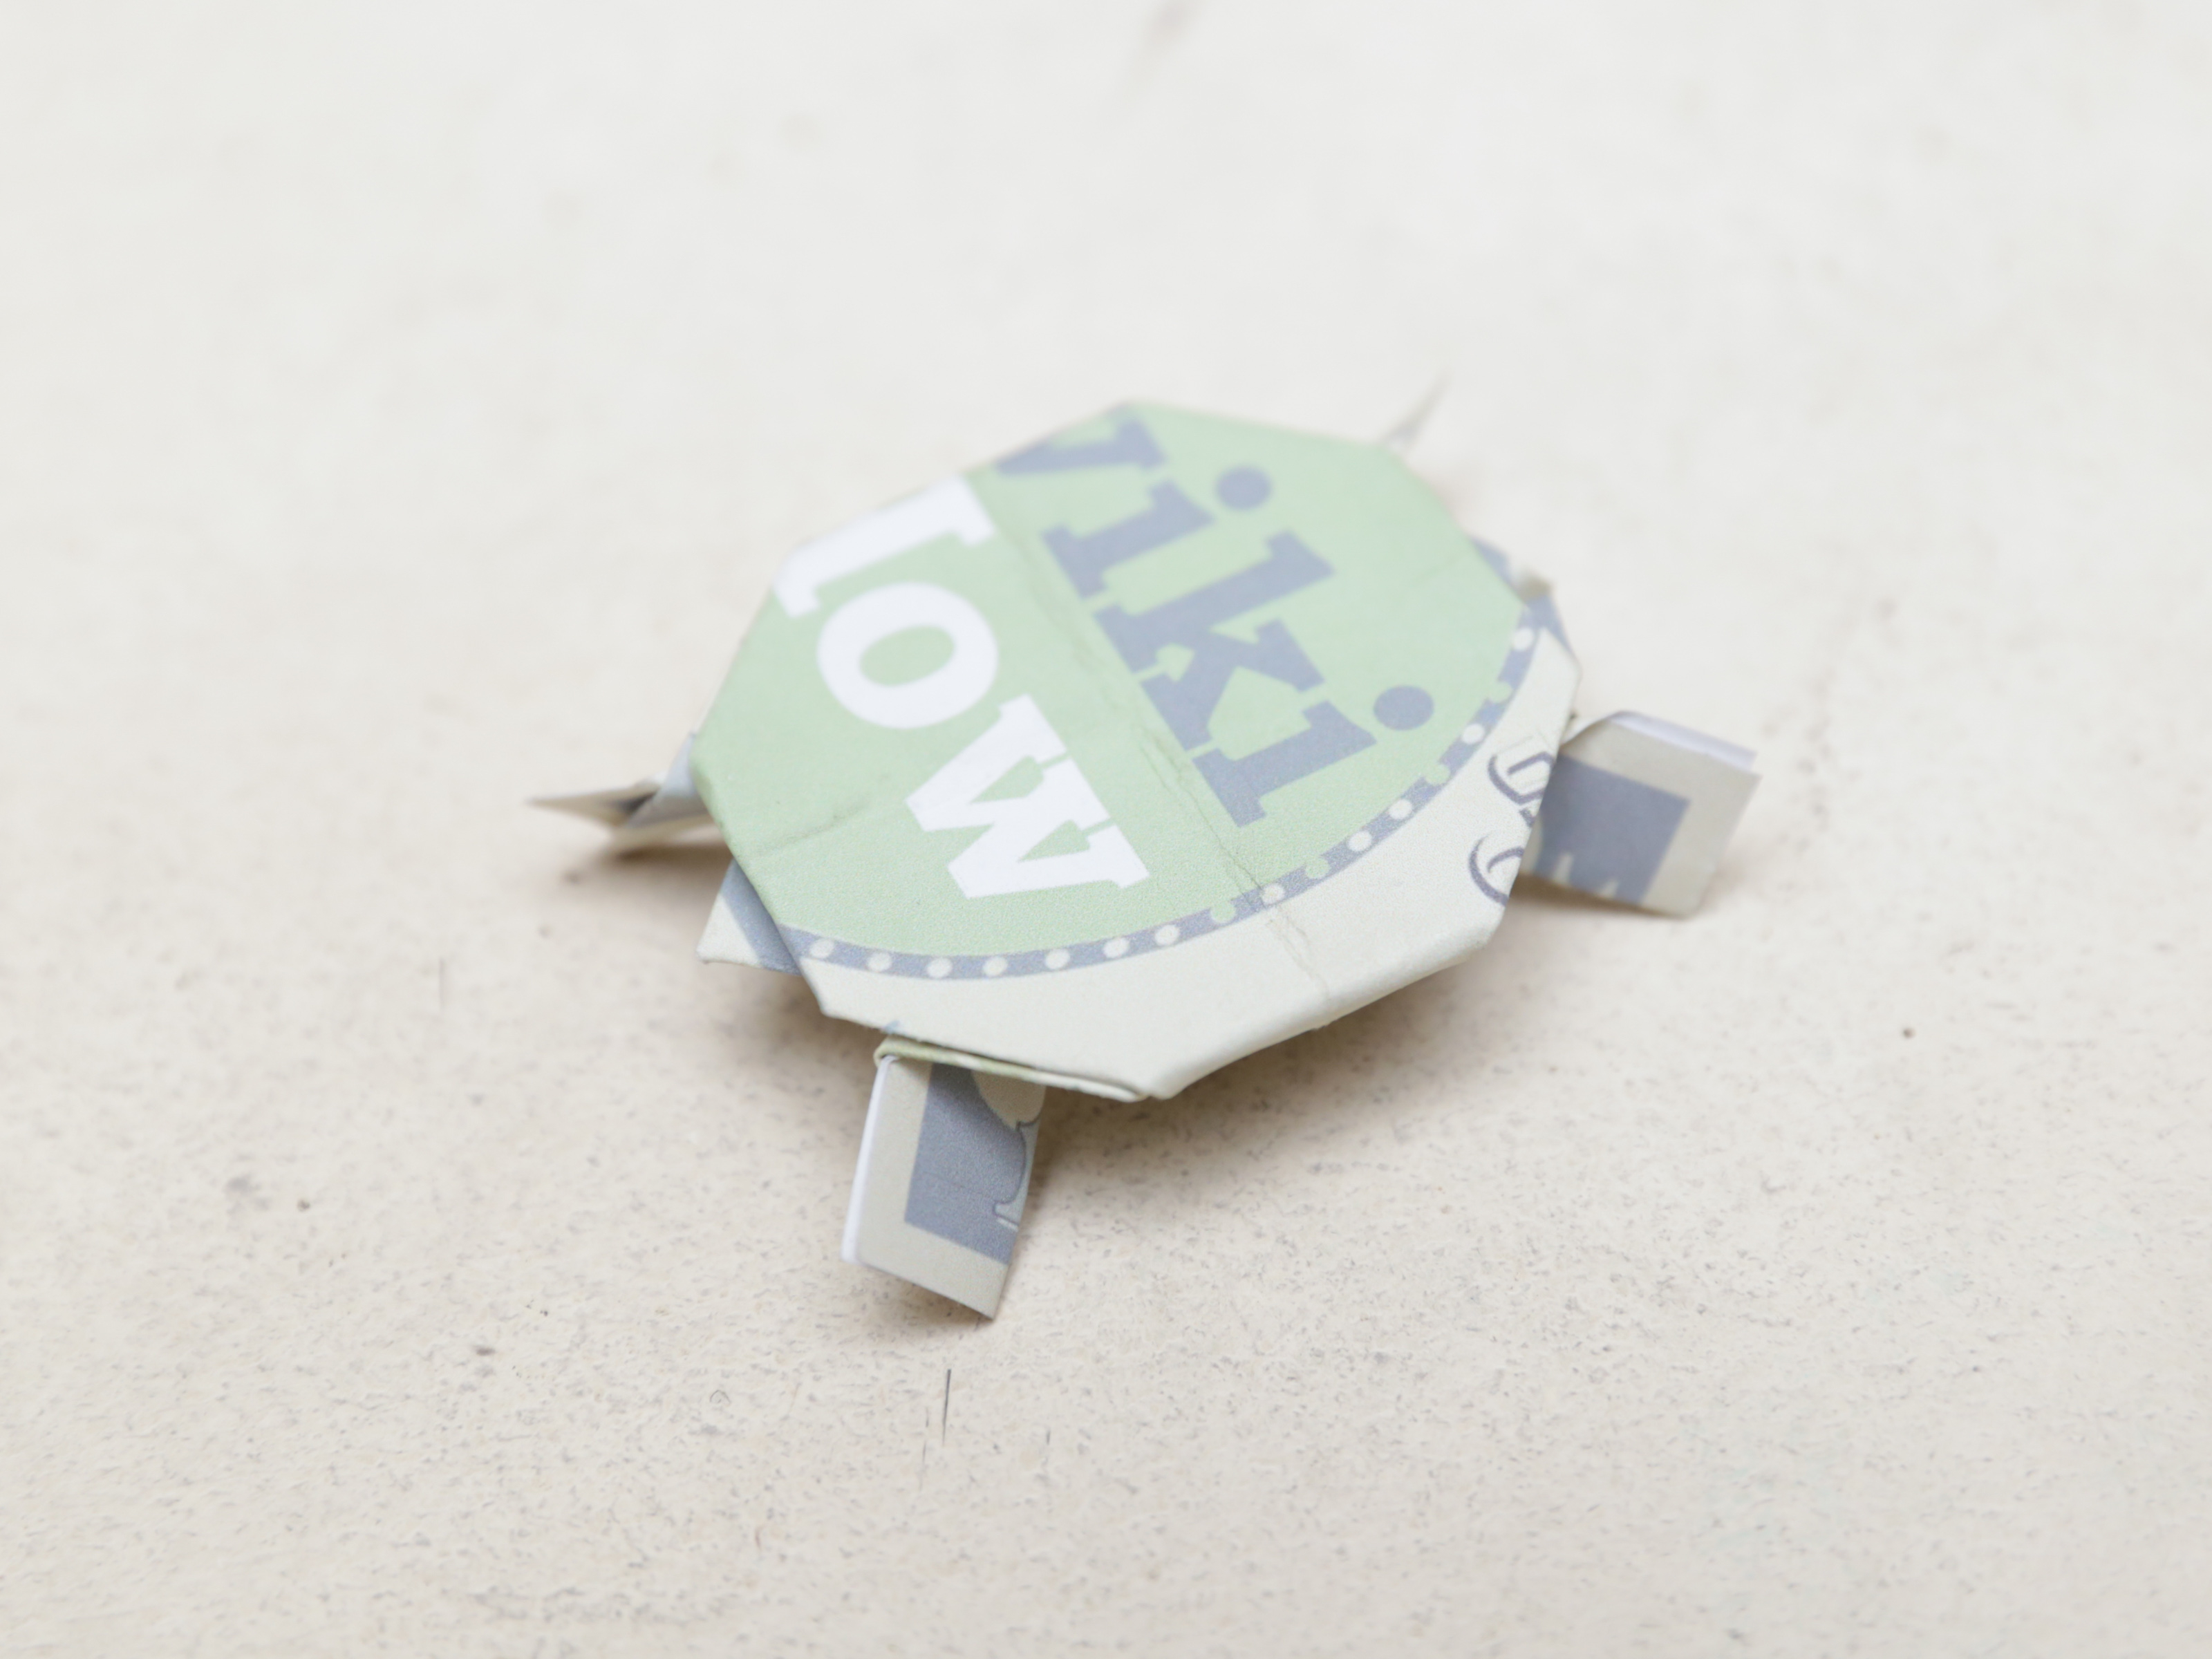 Bow Tie Origami Dollar Bill How To Make A Turtle Out Of A Dollar Bill With Pictures